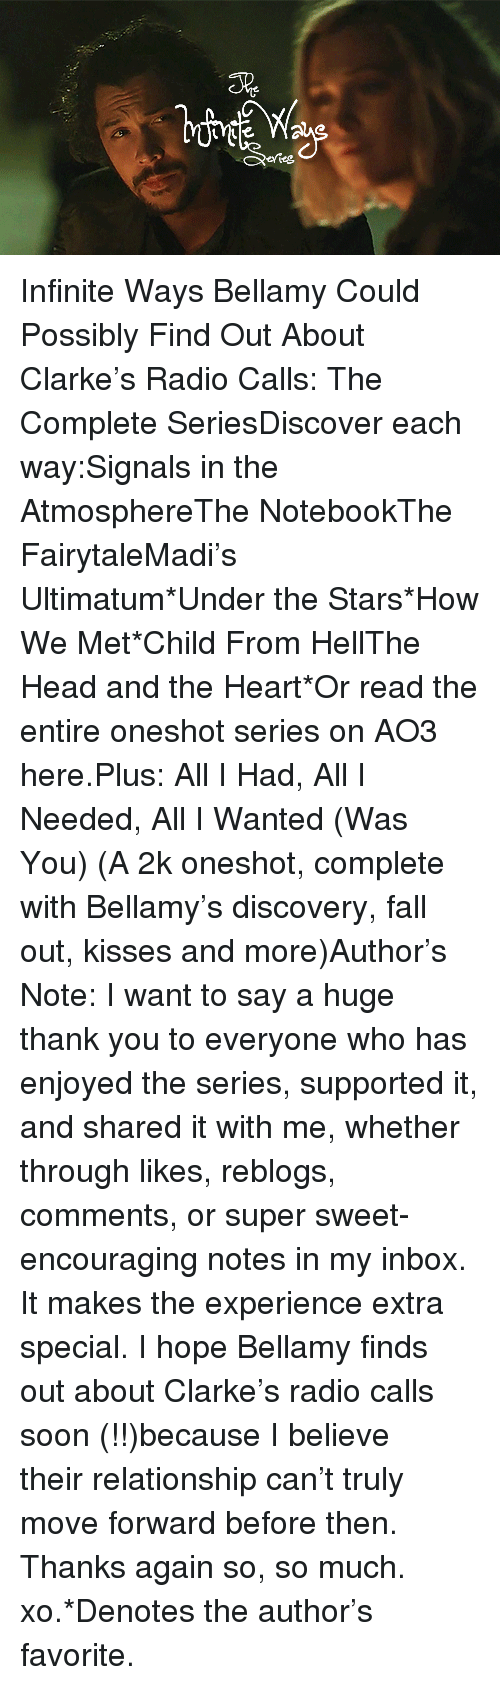 The Notebook: 5%  efteg Infinite Ways Bellamy Could Possibly Find Out About Clarke's Radio Calls: The Complete SeriesDiscover each way:Signals in the AtmosphereThe NotebookThe FairytaleMadi's Ultimatum*Under the Stars*How We Met*Child From HellThe Head and the Heart*Or read the entire oneshotseries on AO3 here.Plus:All I Had, All I Needed, All I Wanted (Was You) (A 2k oneshot, complete with Bellamy's discovery, fall out, kisses and more)Author's Note: I want to say a huge thank you to everyone who has enjoyed the series, supported it, and shared it with me, whether through likes, reblogs, comments, or super sweet-encouraging notes in my inbox. It makes the experience extra special. I hope Bellamy finds out about Clarke's radio calls soon (!!)because I believe theirrelationship can't truly move forward before then. Thanks again so, so much. xo.*Denotes the author's favorite.